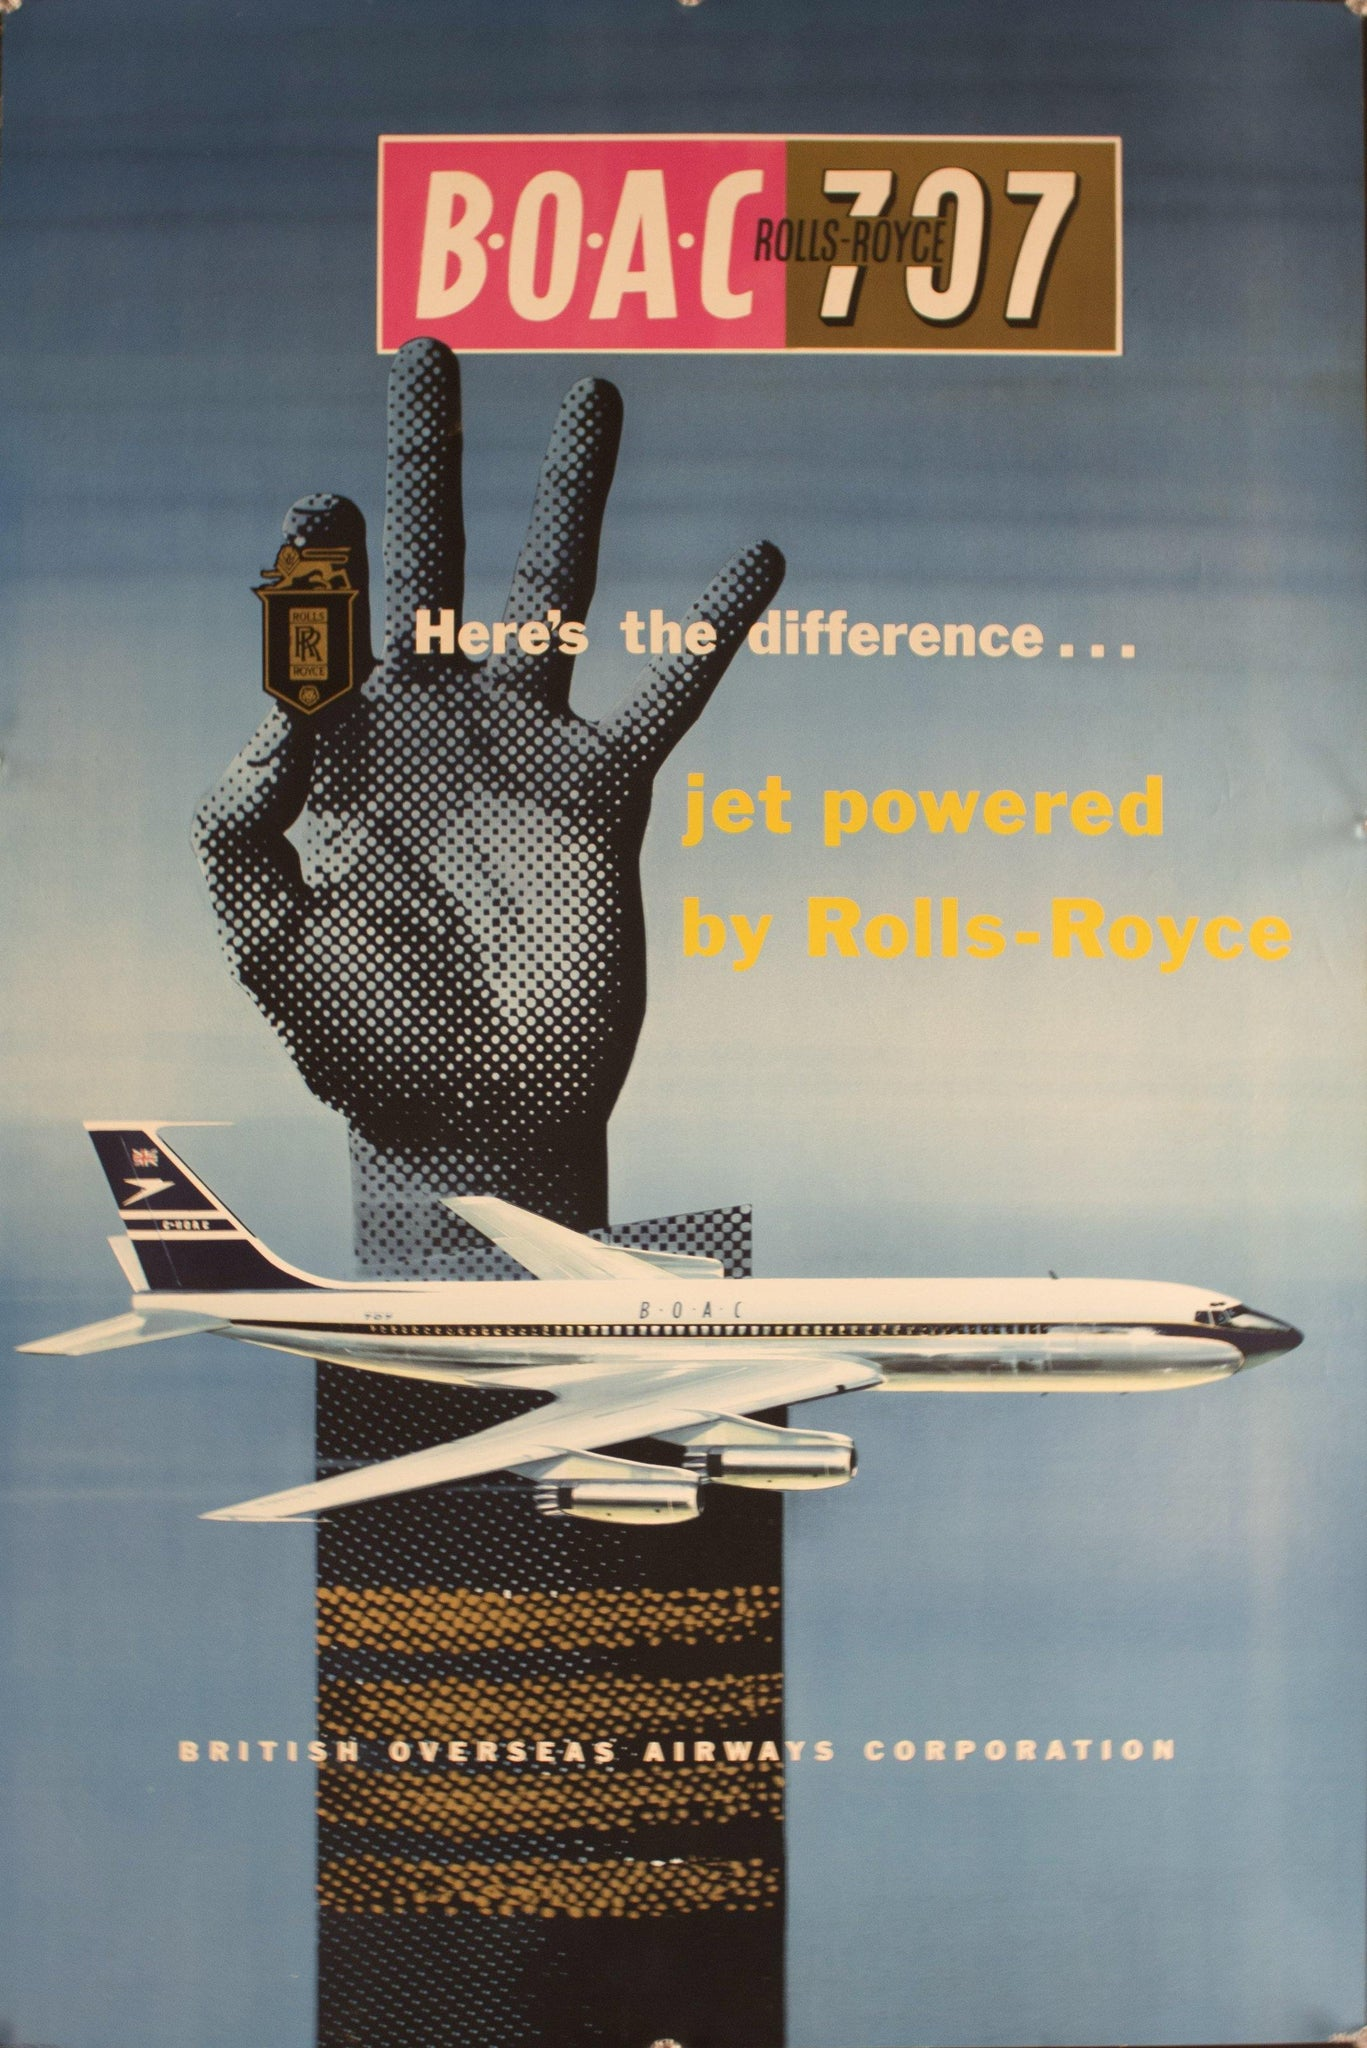 1959 Rolls-Royce BOAC 707 | Here's the difference…Jet Powered by Rolls-Royce